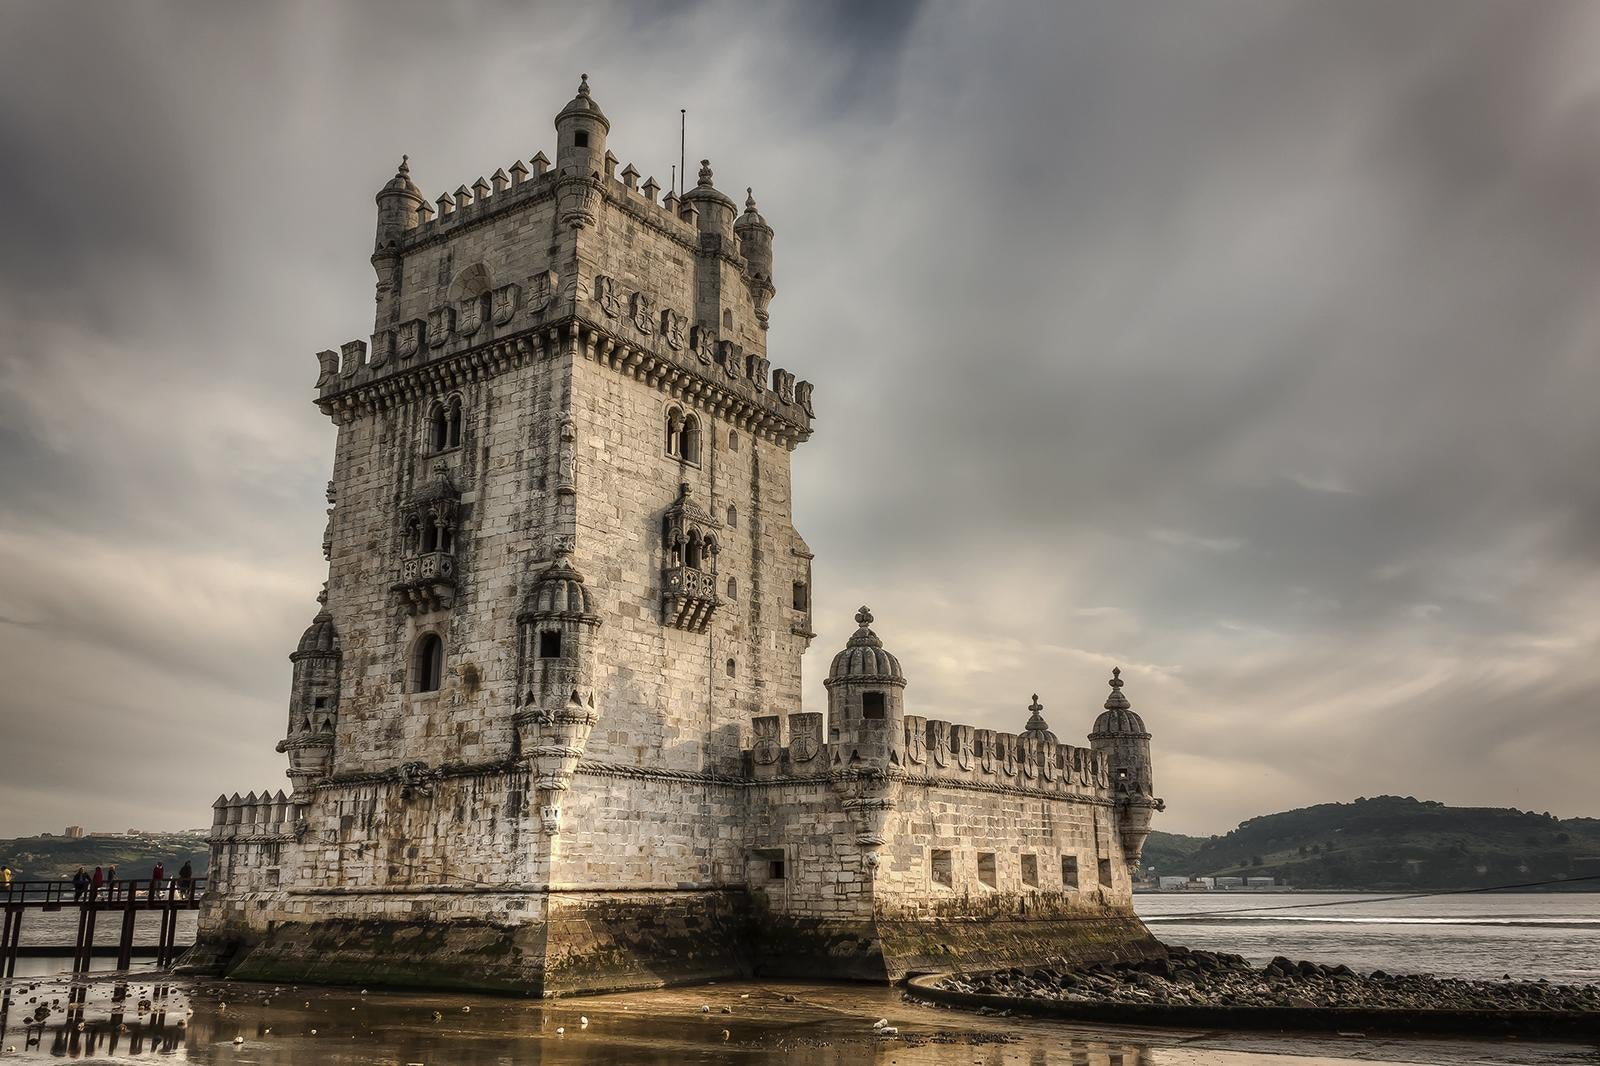 Sky in Belém Tower